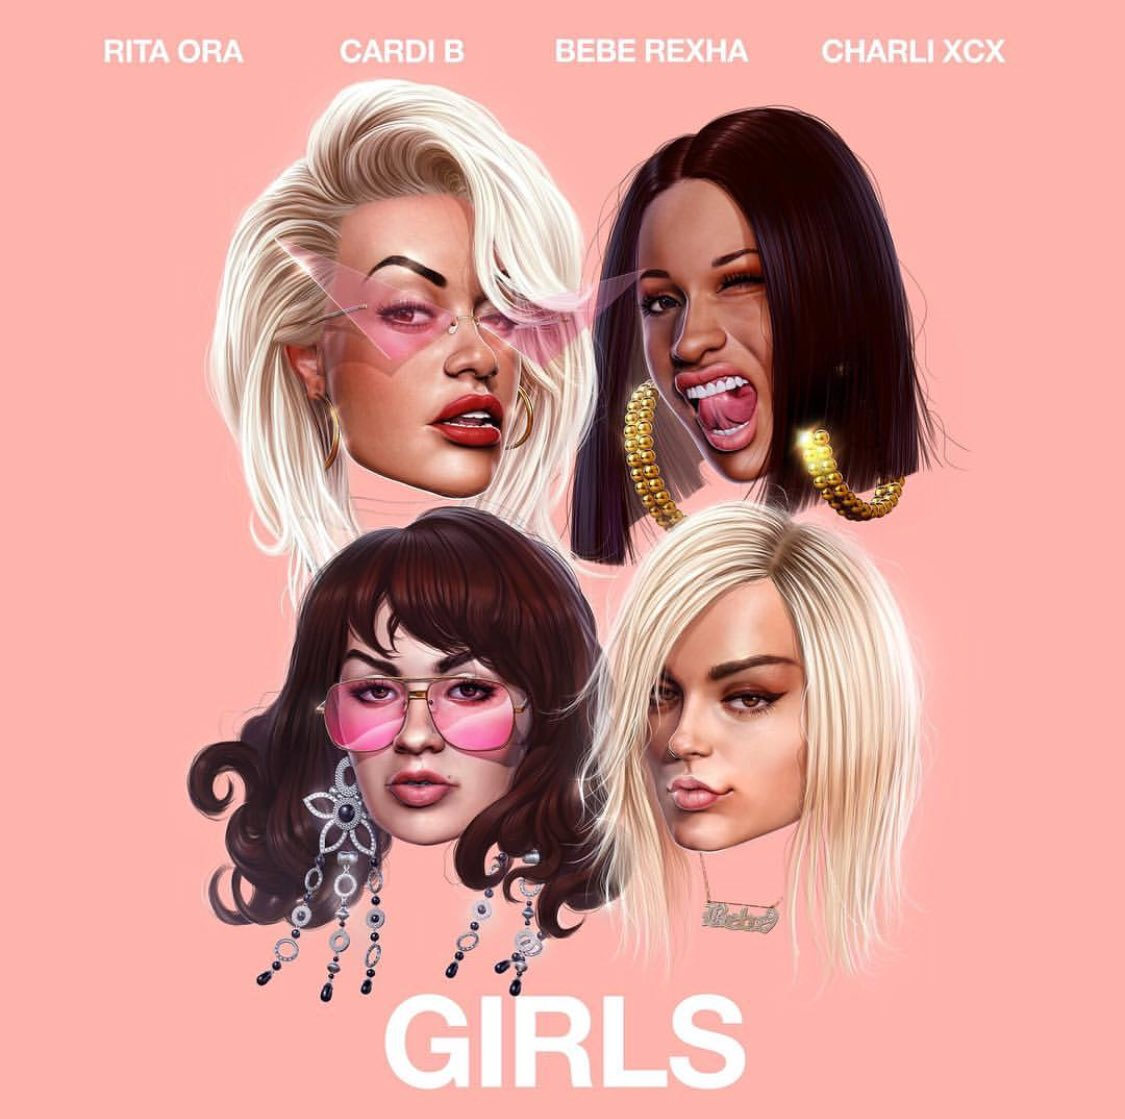 Rita Ora's New Single Features Cardi B, Charli XCX, and Bebe Rexha